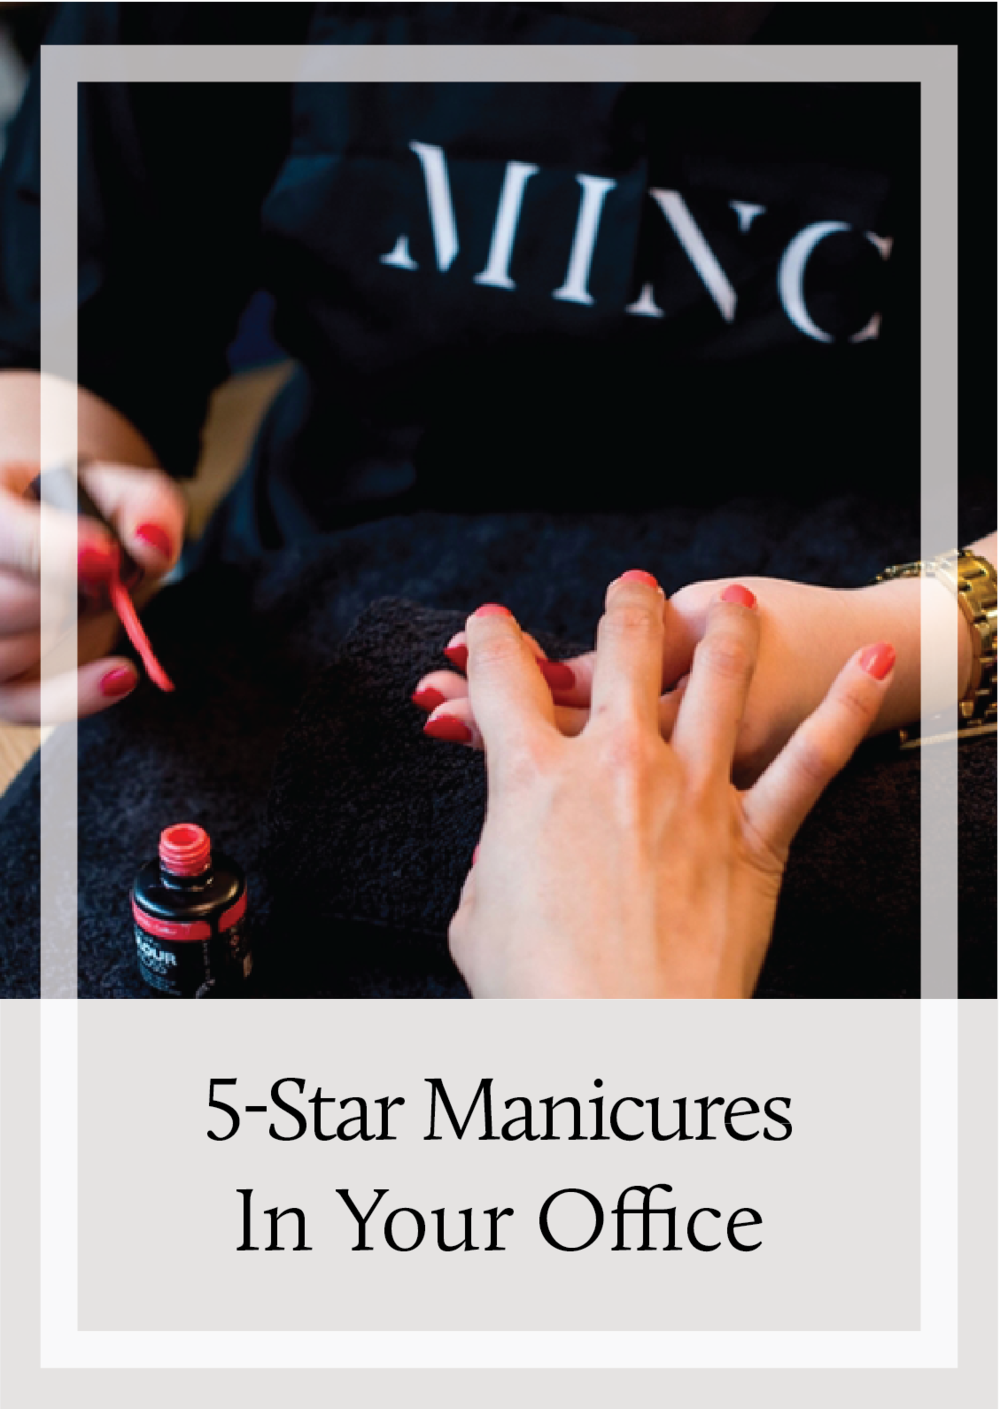 MINC Beauty : Professional Manicures in your London Office